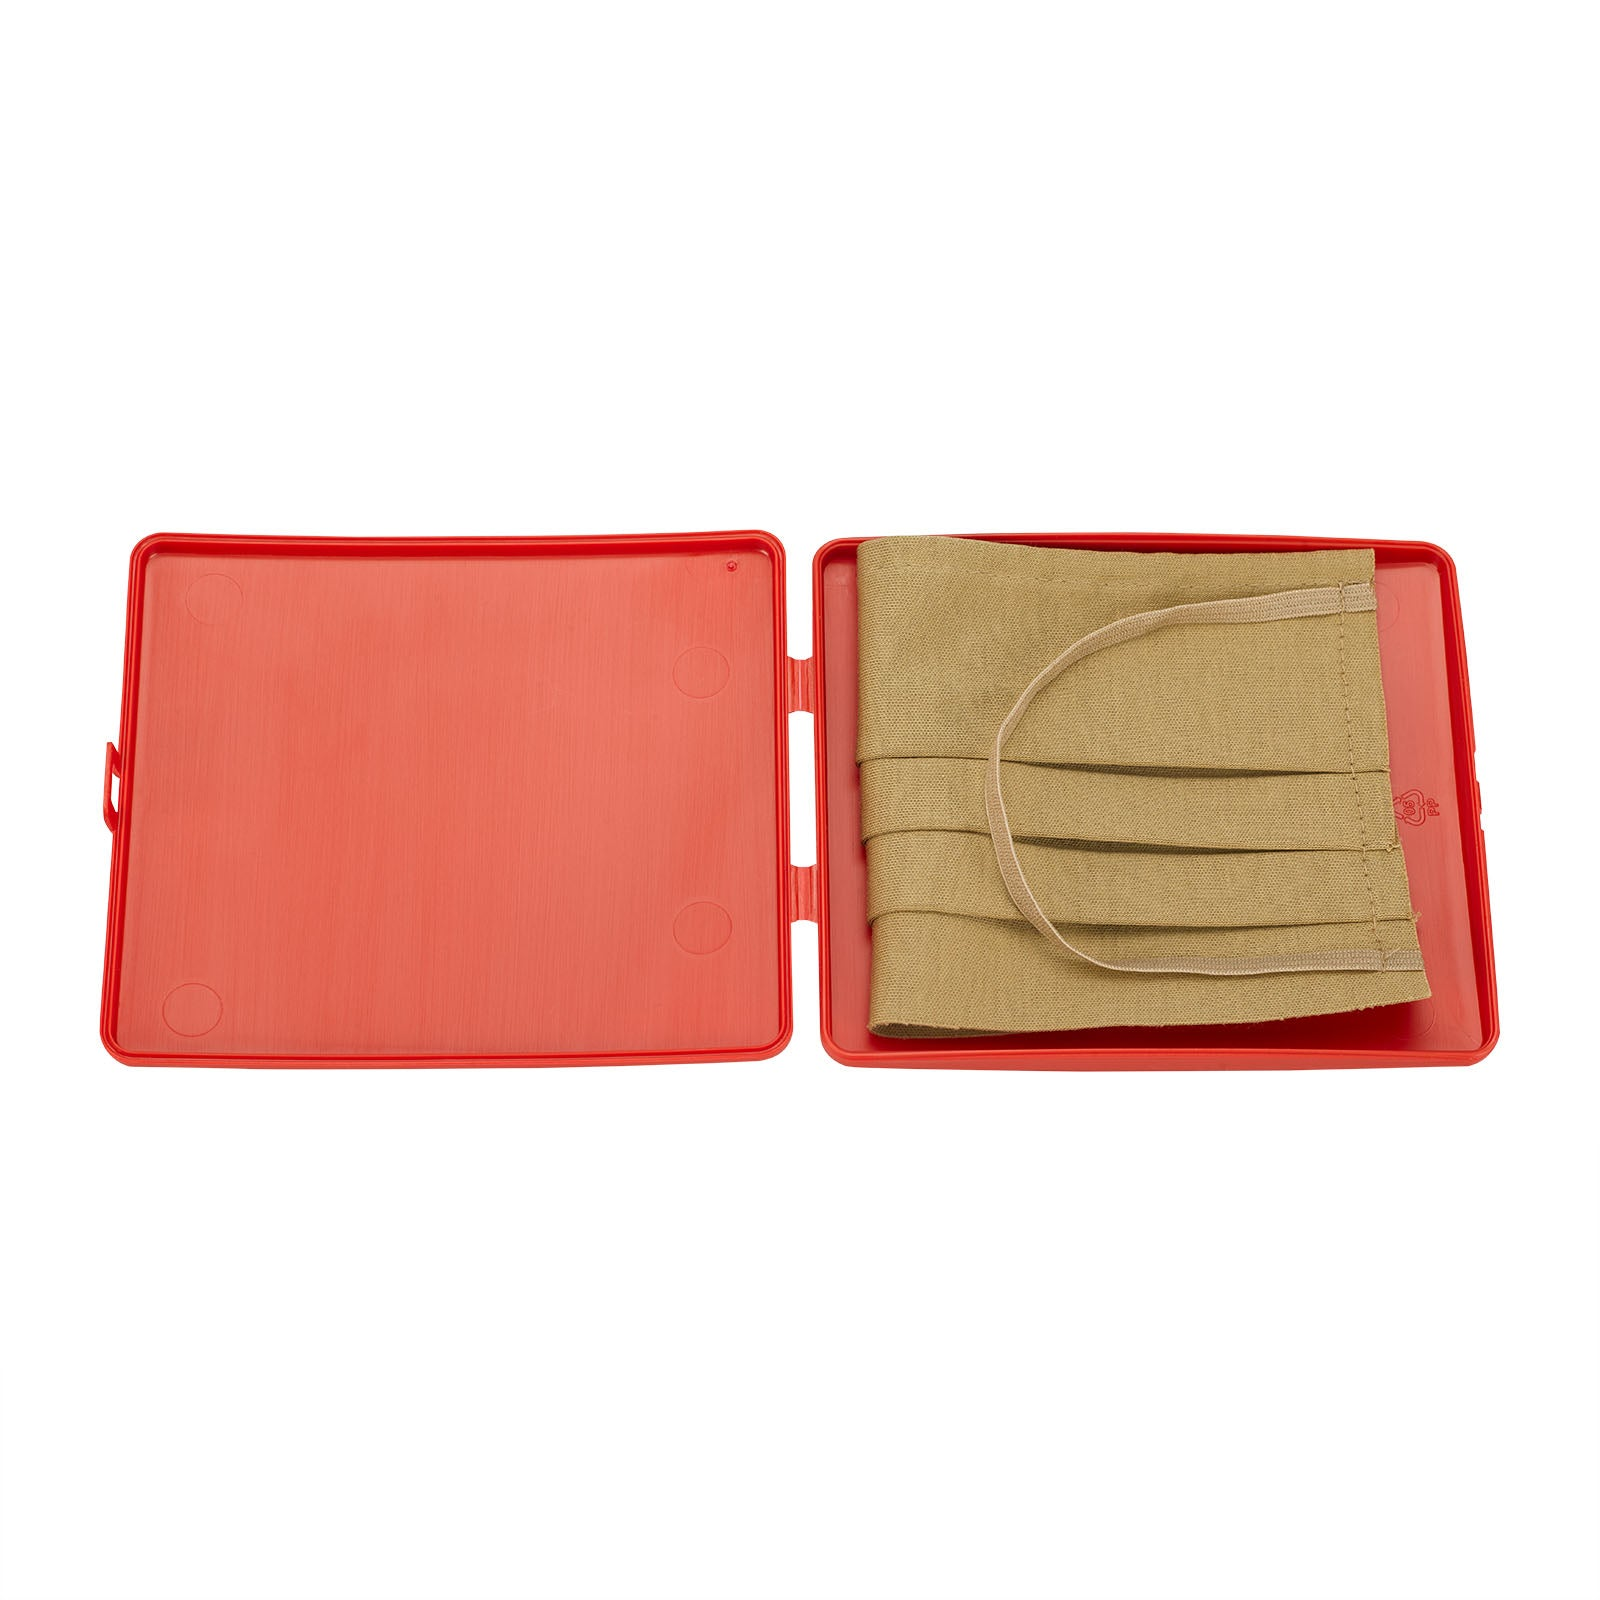 Foldable Mask Holder - Red